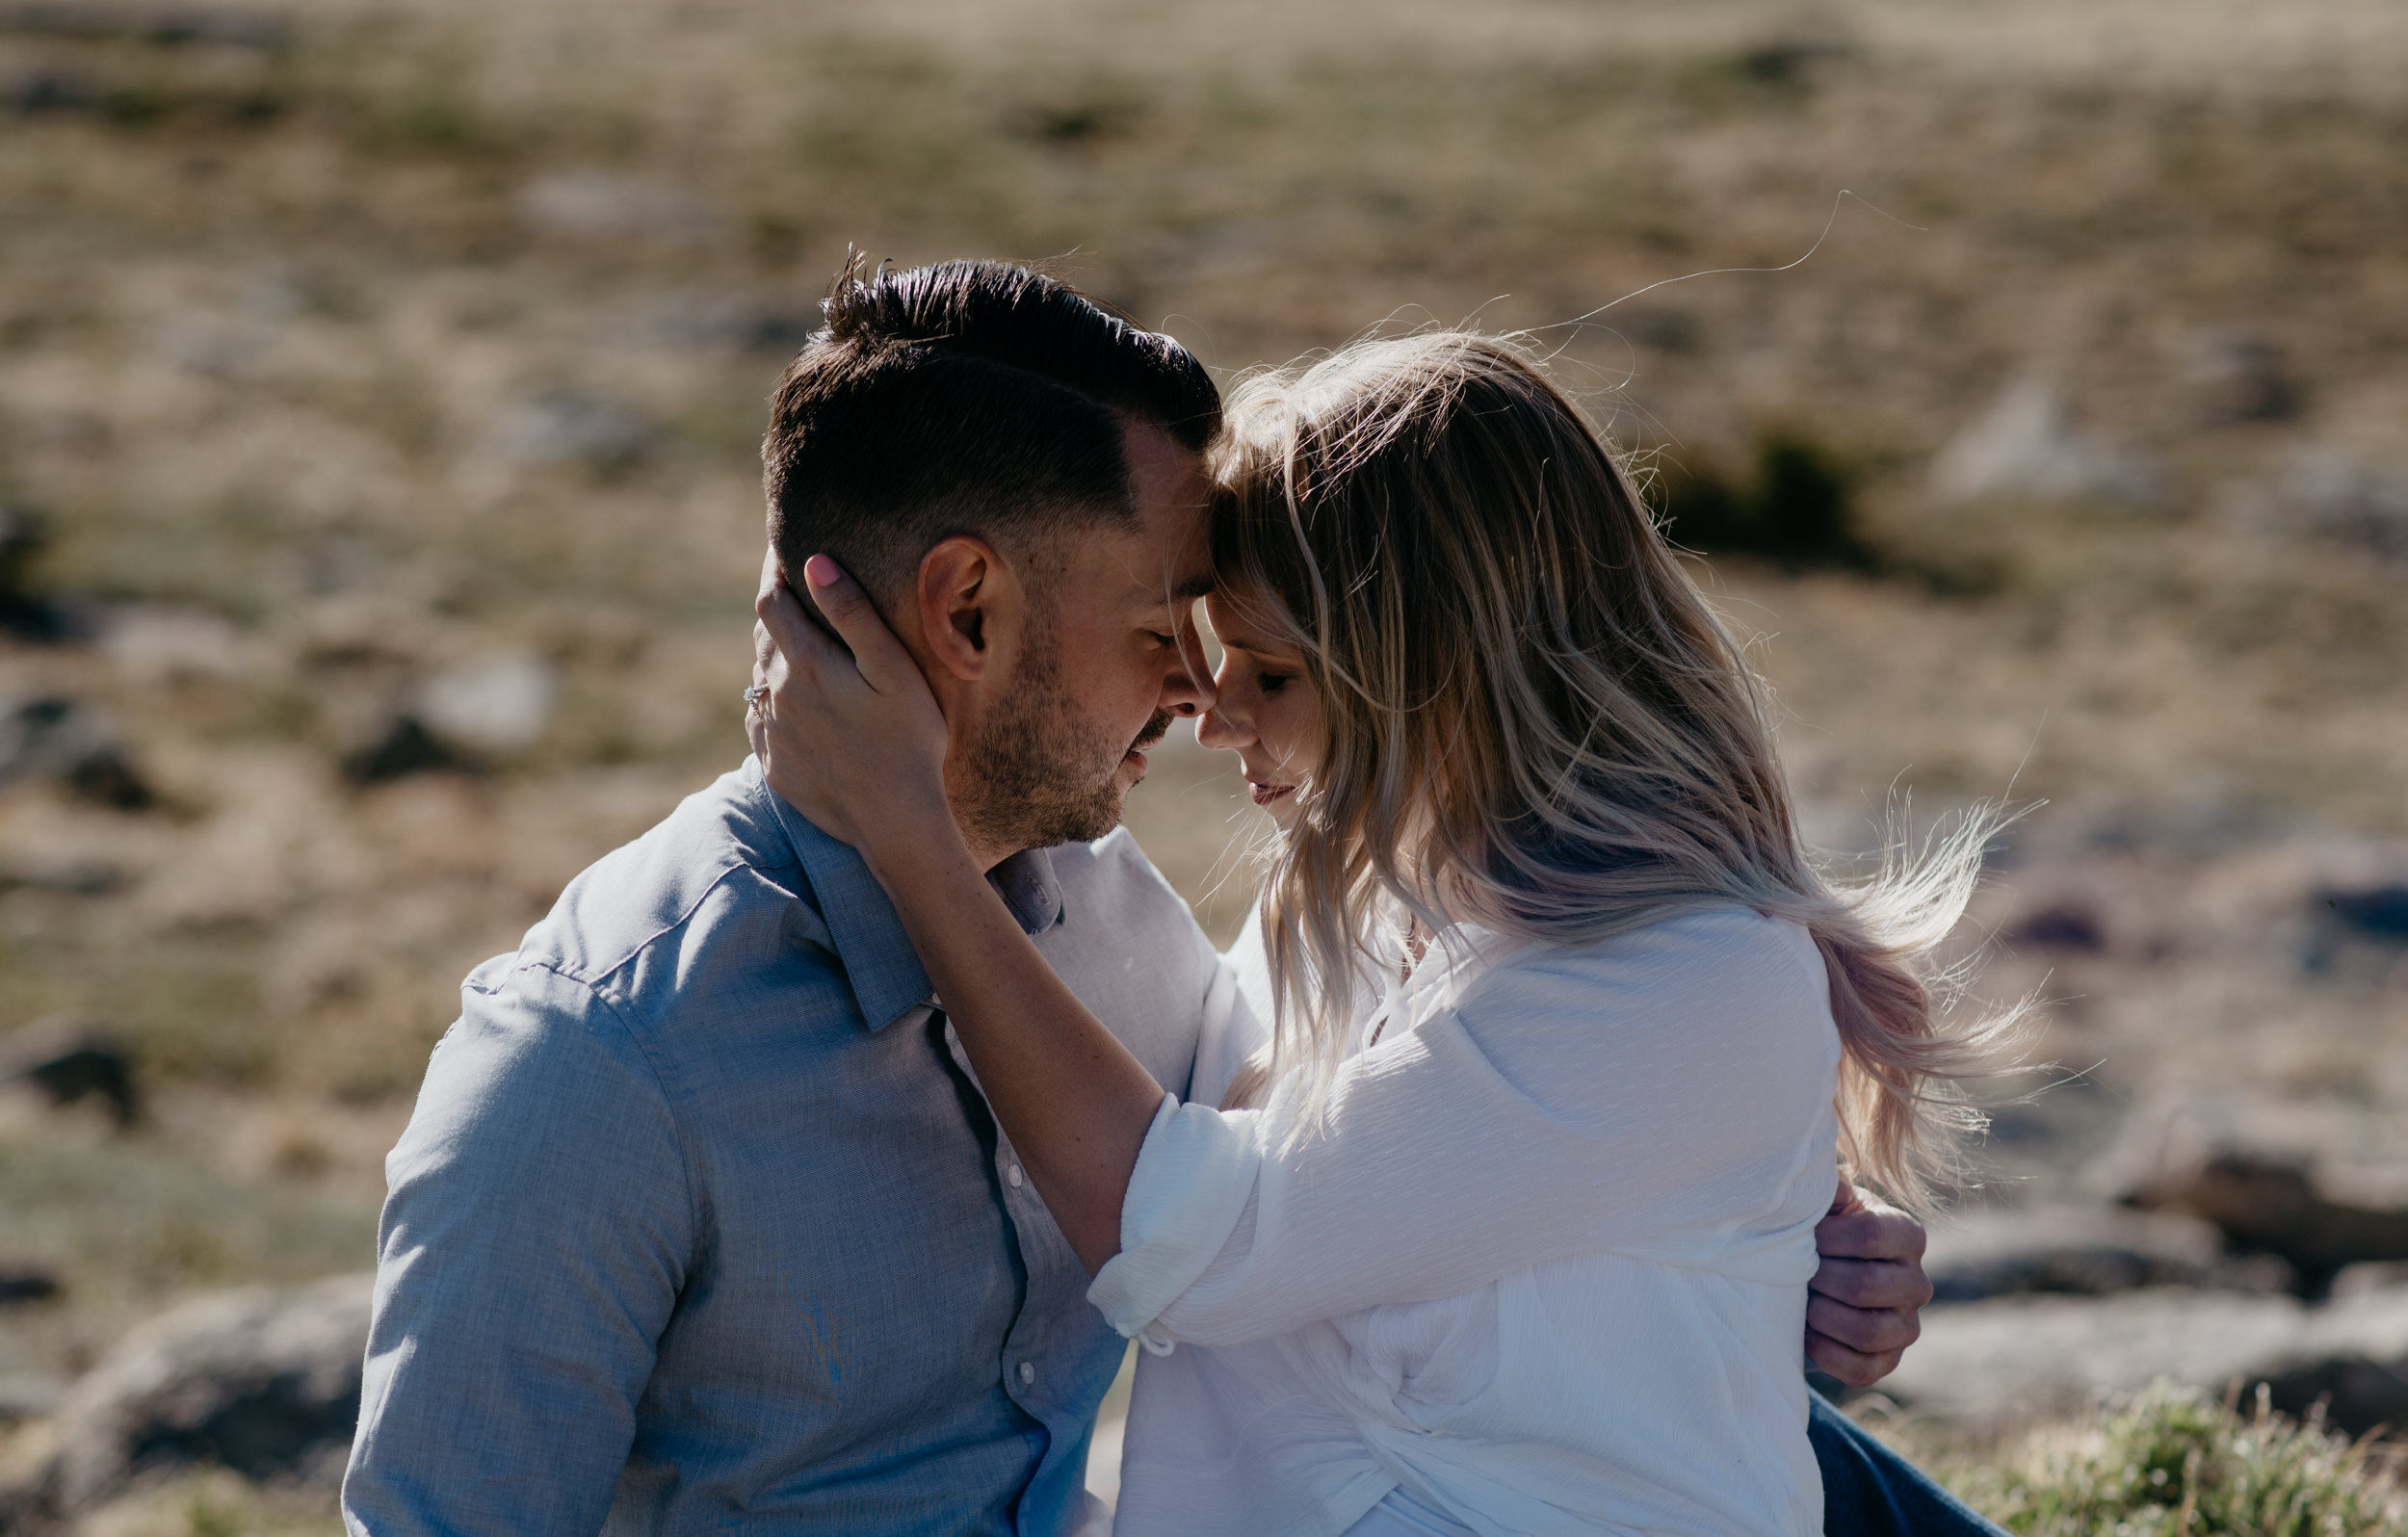 Adventure engagement session in Rocky Mountain National Park. Colorado elopement photographer.